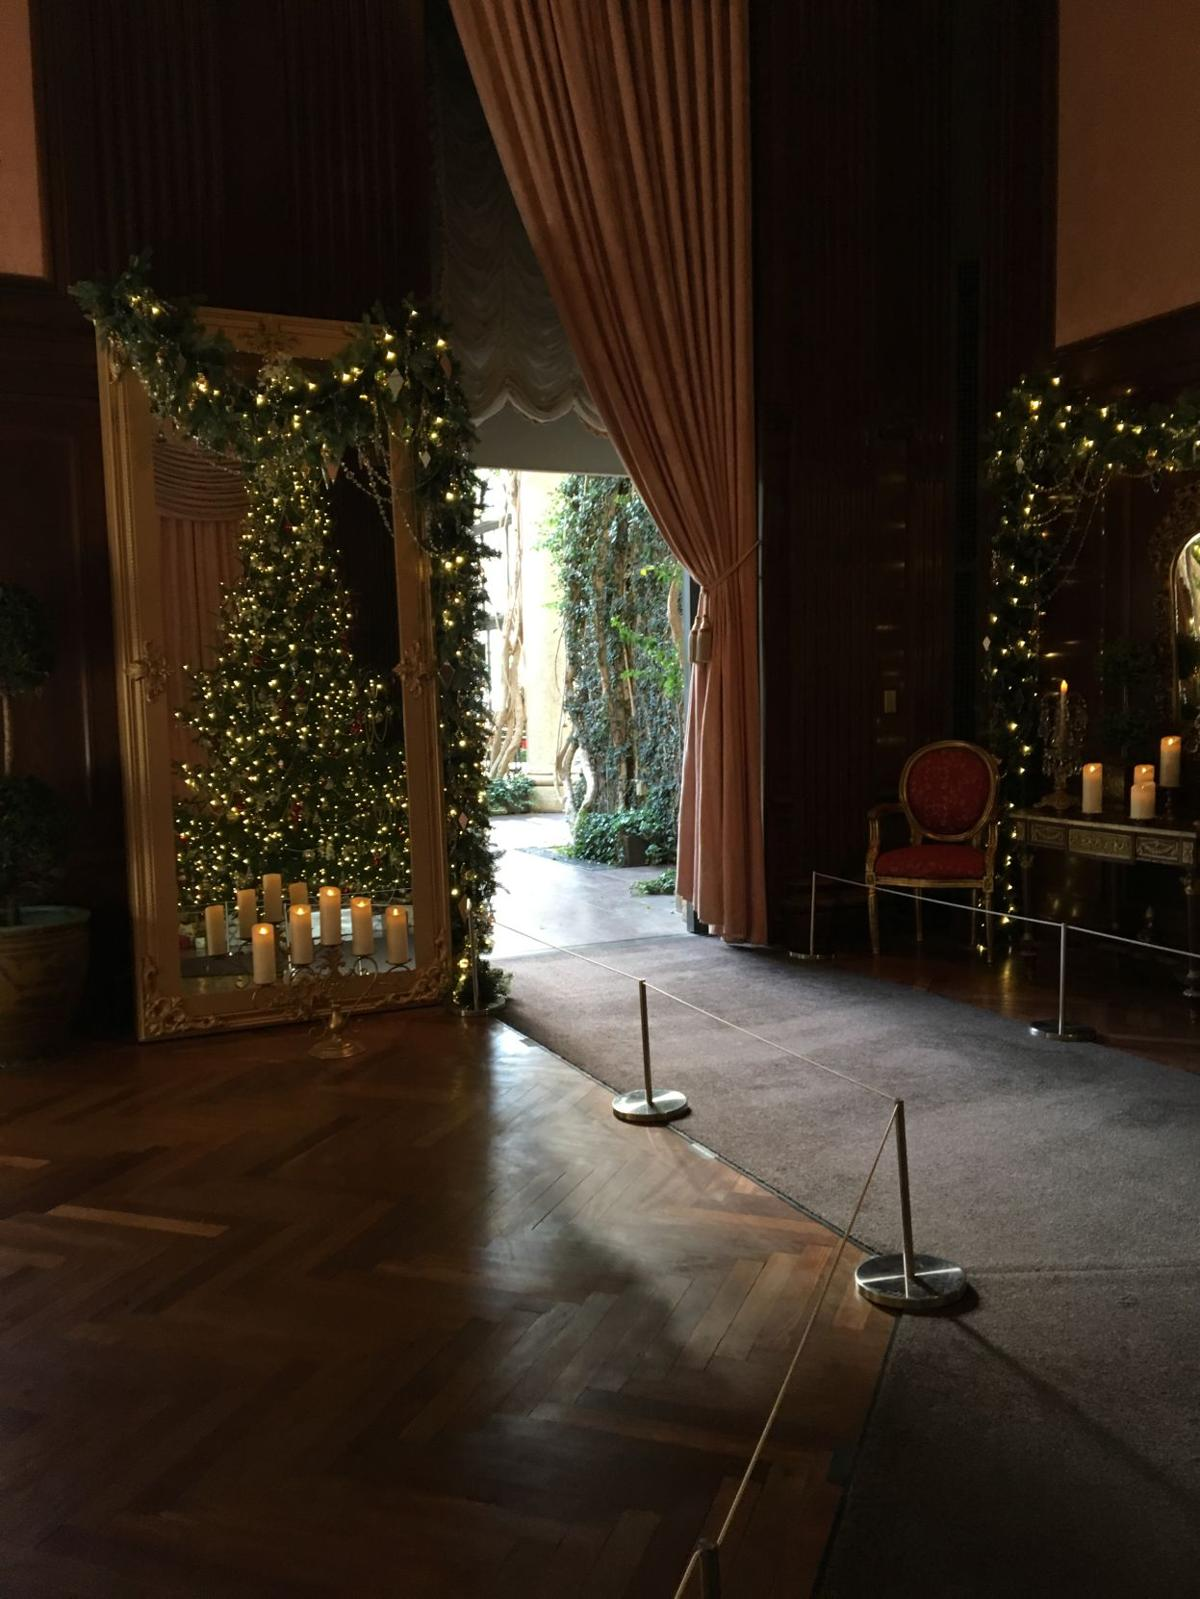 French-inspired holiday decor lights up Longwood Gardens ...